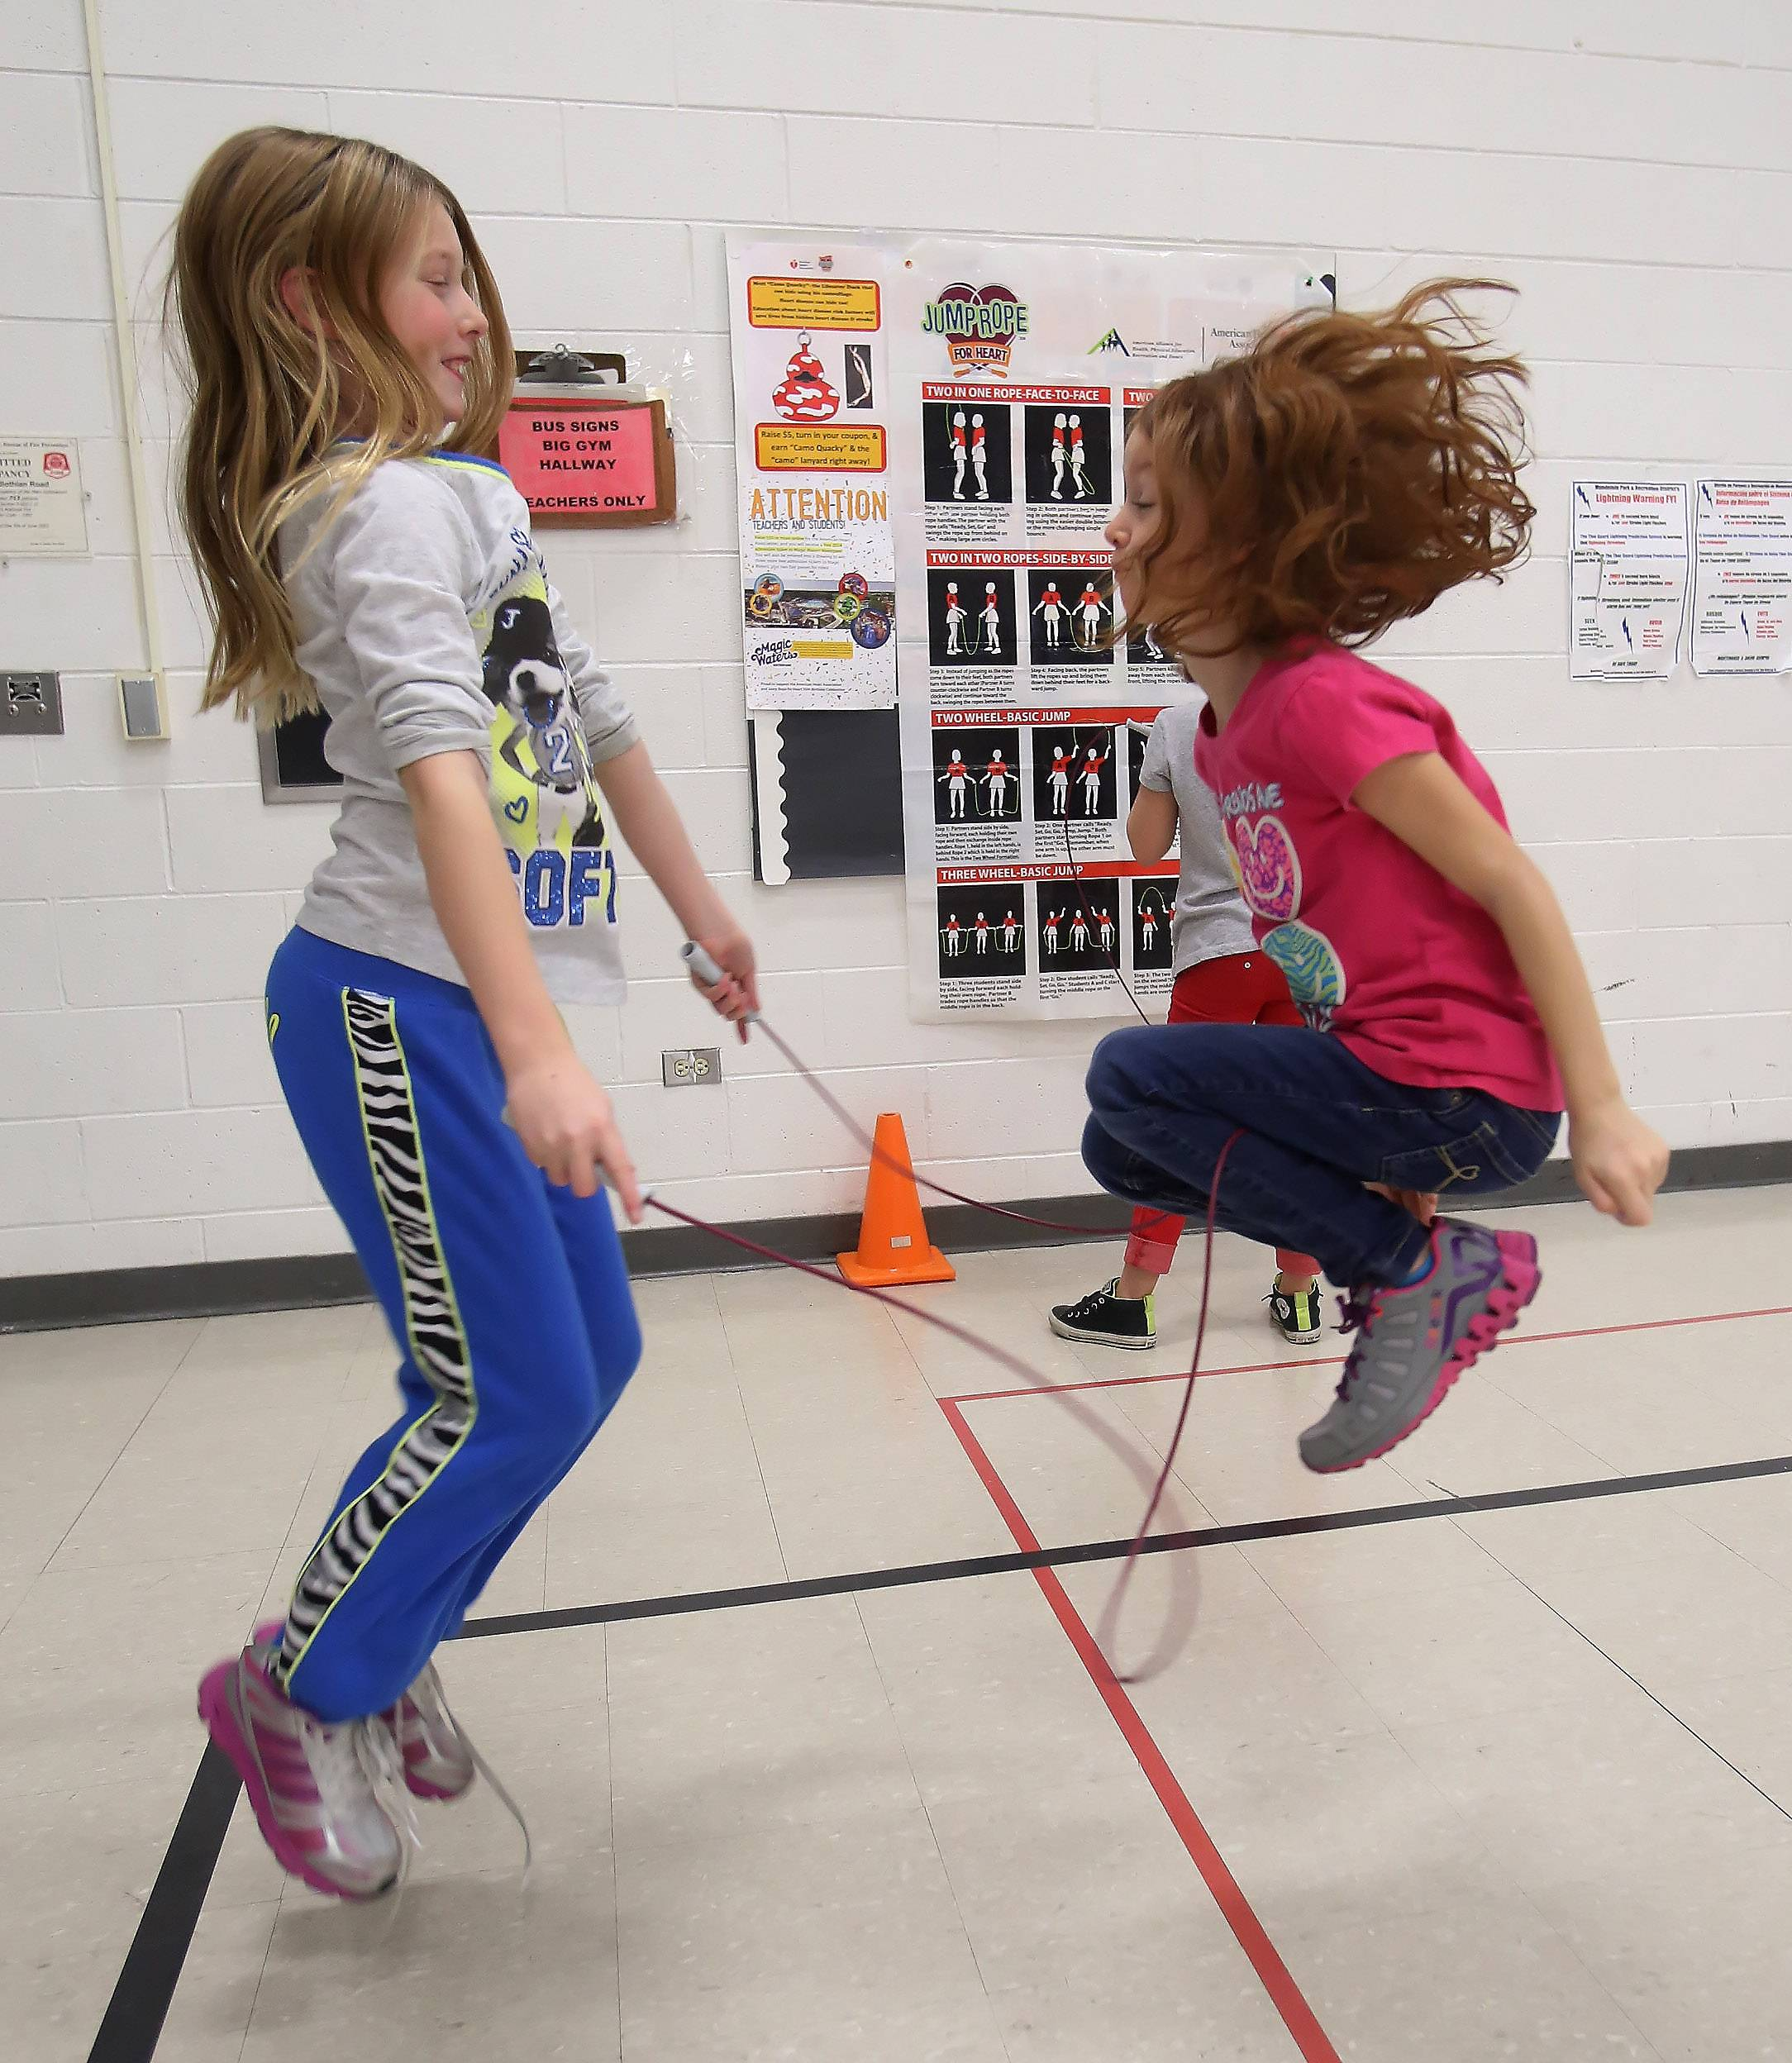 Third graders Katelyn Fletcher, left, and Mackenzie Czapla, jump rope together during Jump Rope for Heart Tuesday at Mechanics Grove School in Mundelein. Students in grades third through fifth raised money for the American Heart Association.